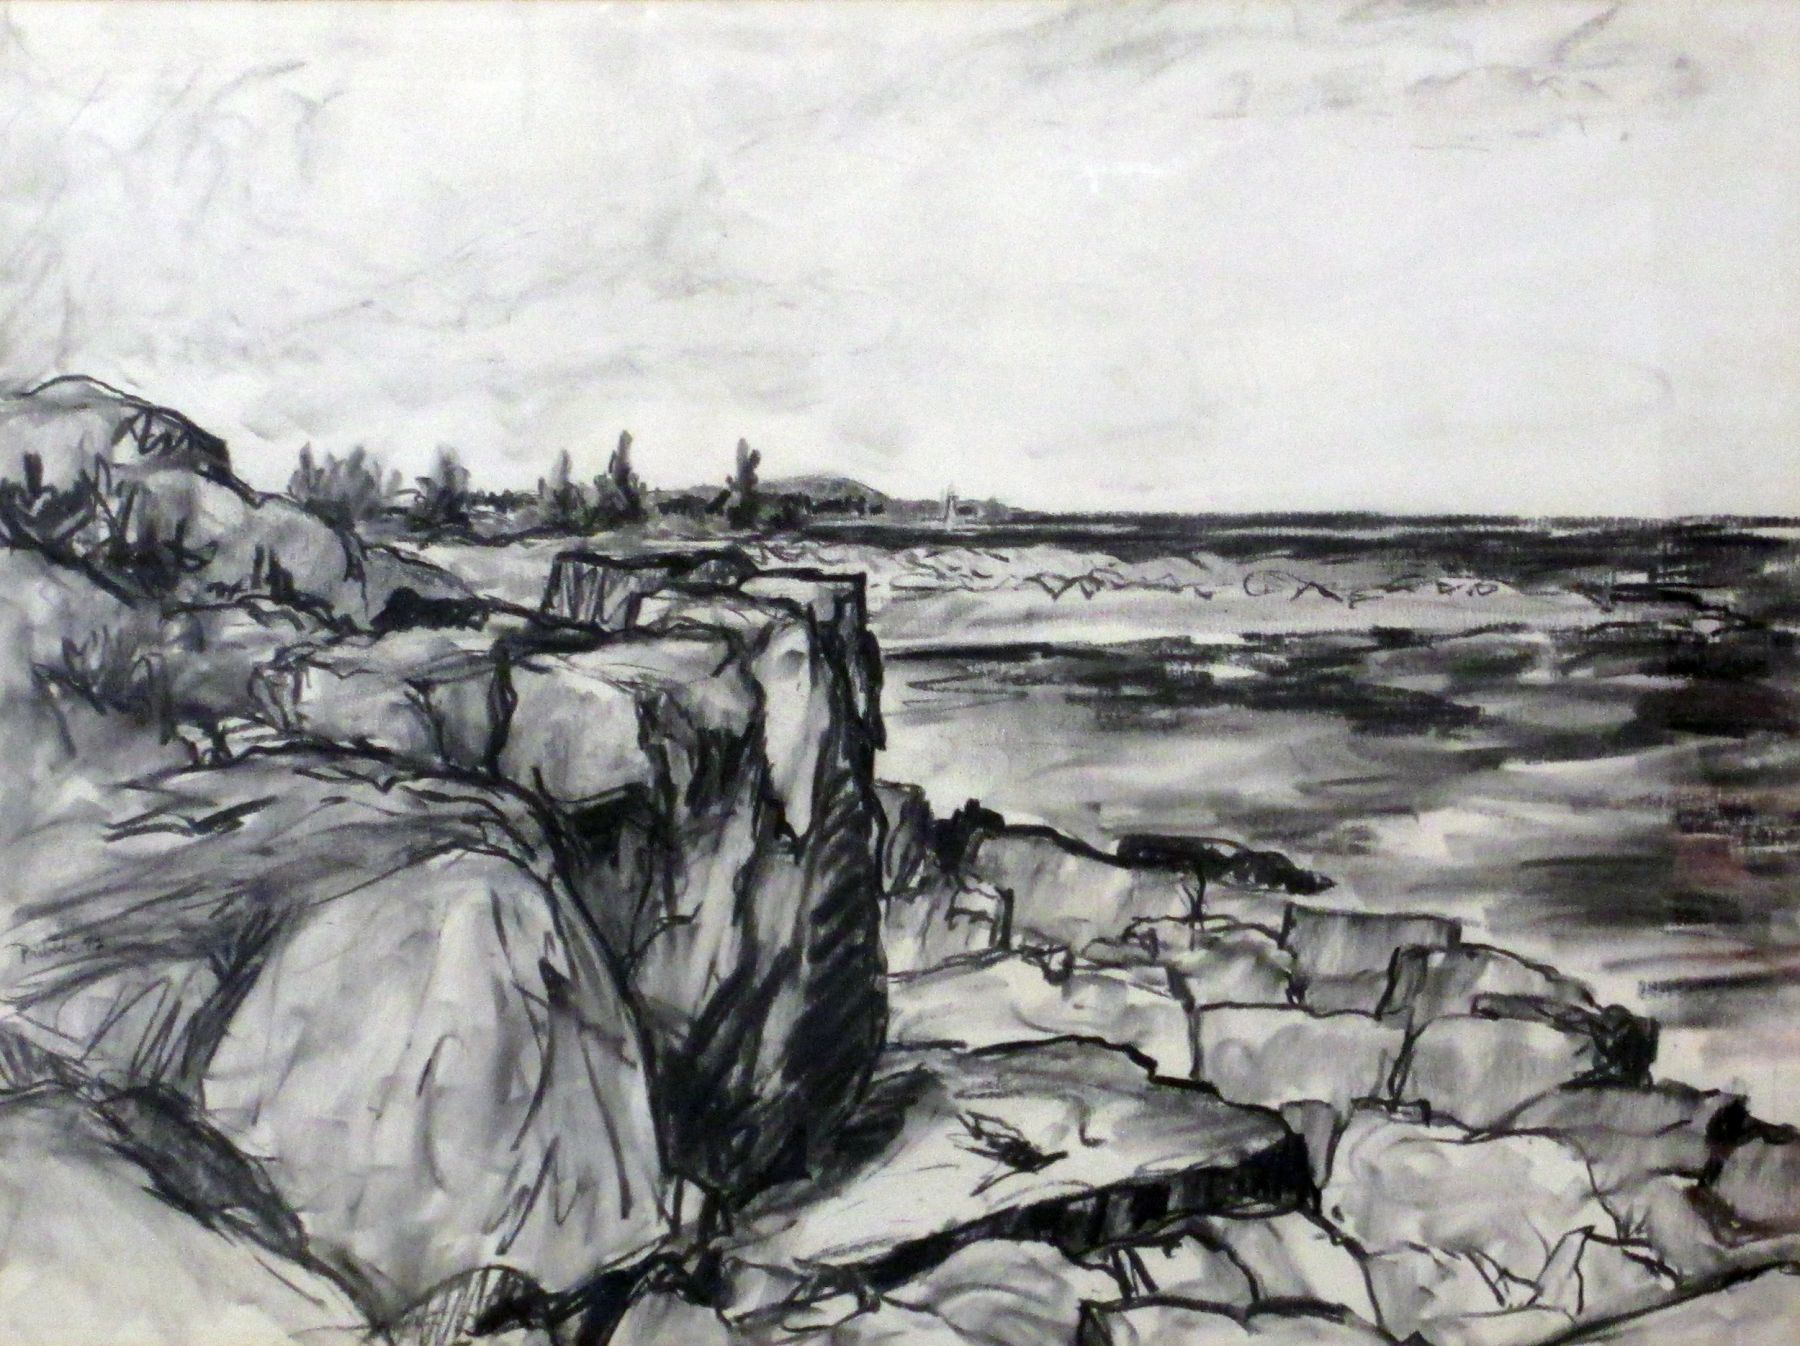 Easton Pribble, Cranberry Island